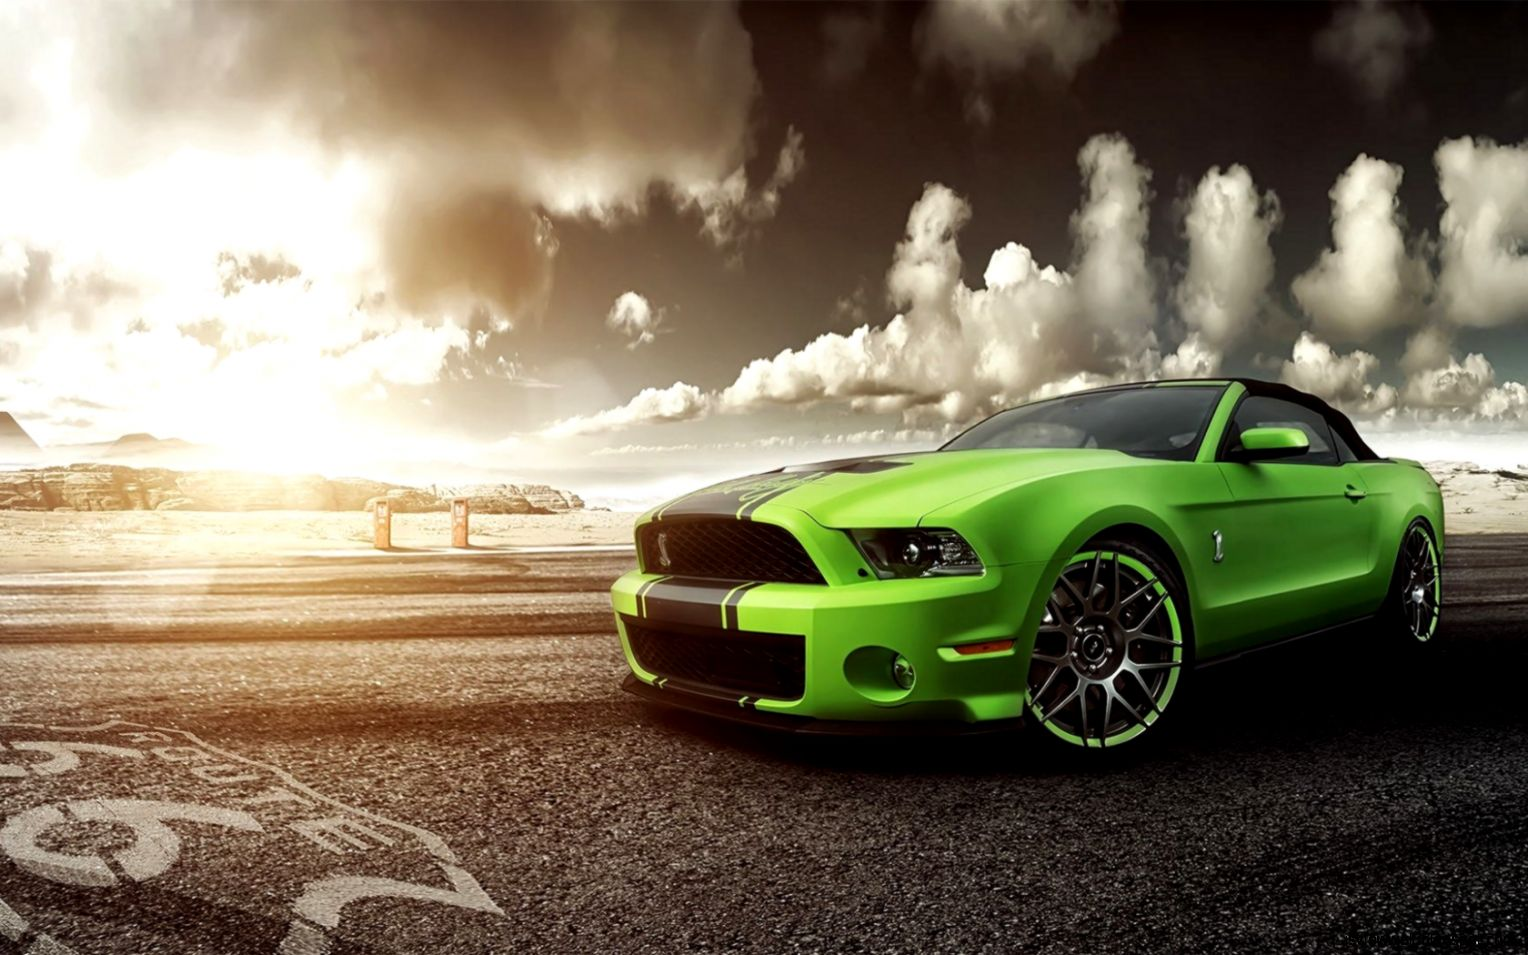 Green 1967 Ford Mustang Shelby Gt500 Wallpaper | View ...